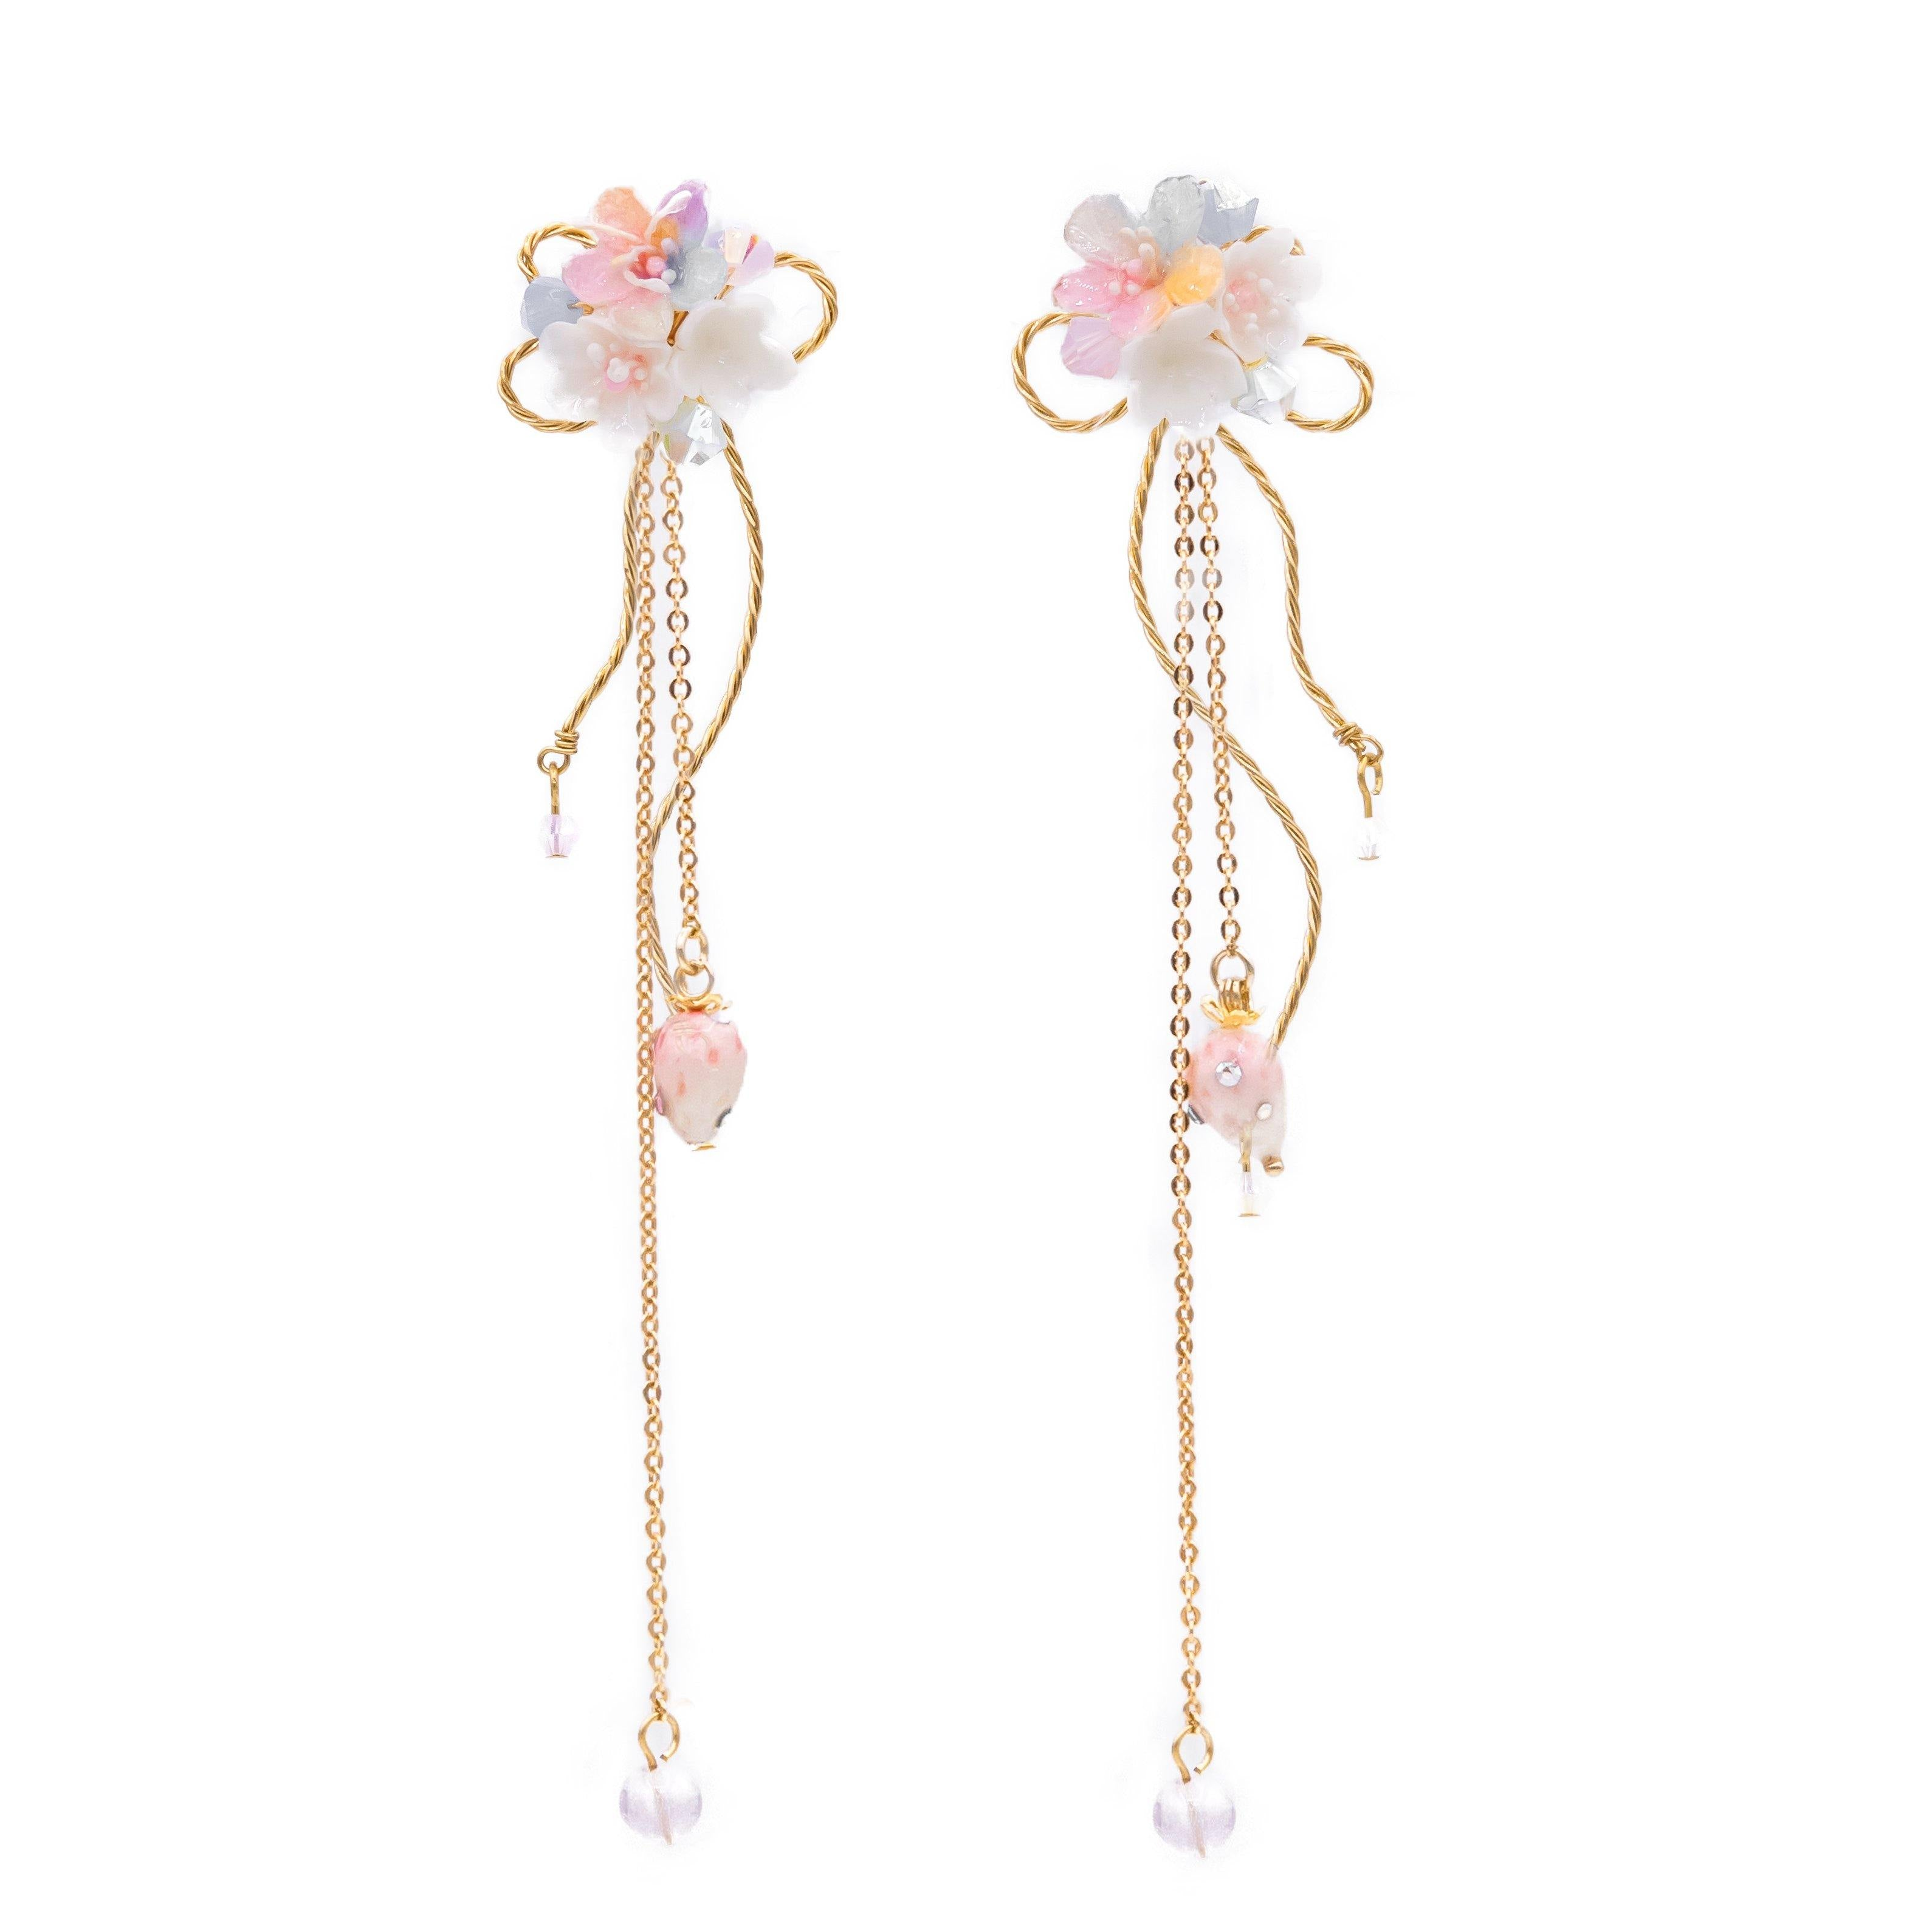 Aurora's Kiss 5-in-1 14K Gold-plated 925 Silver Earrings (with detachable ear cuff)